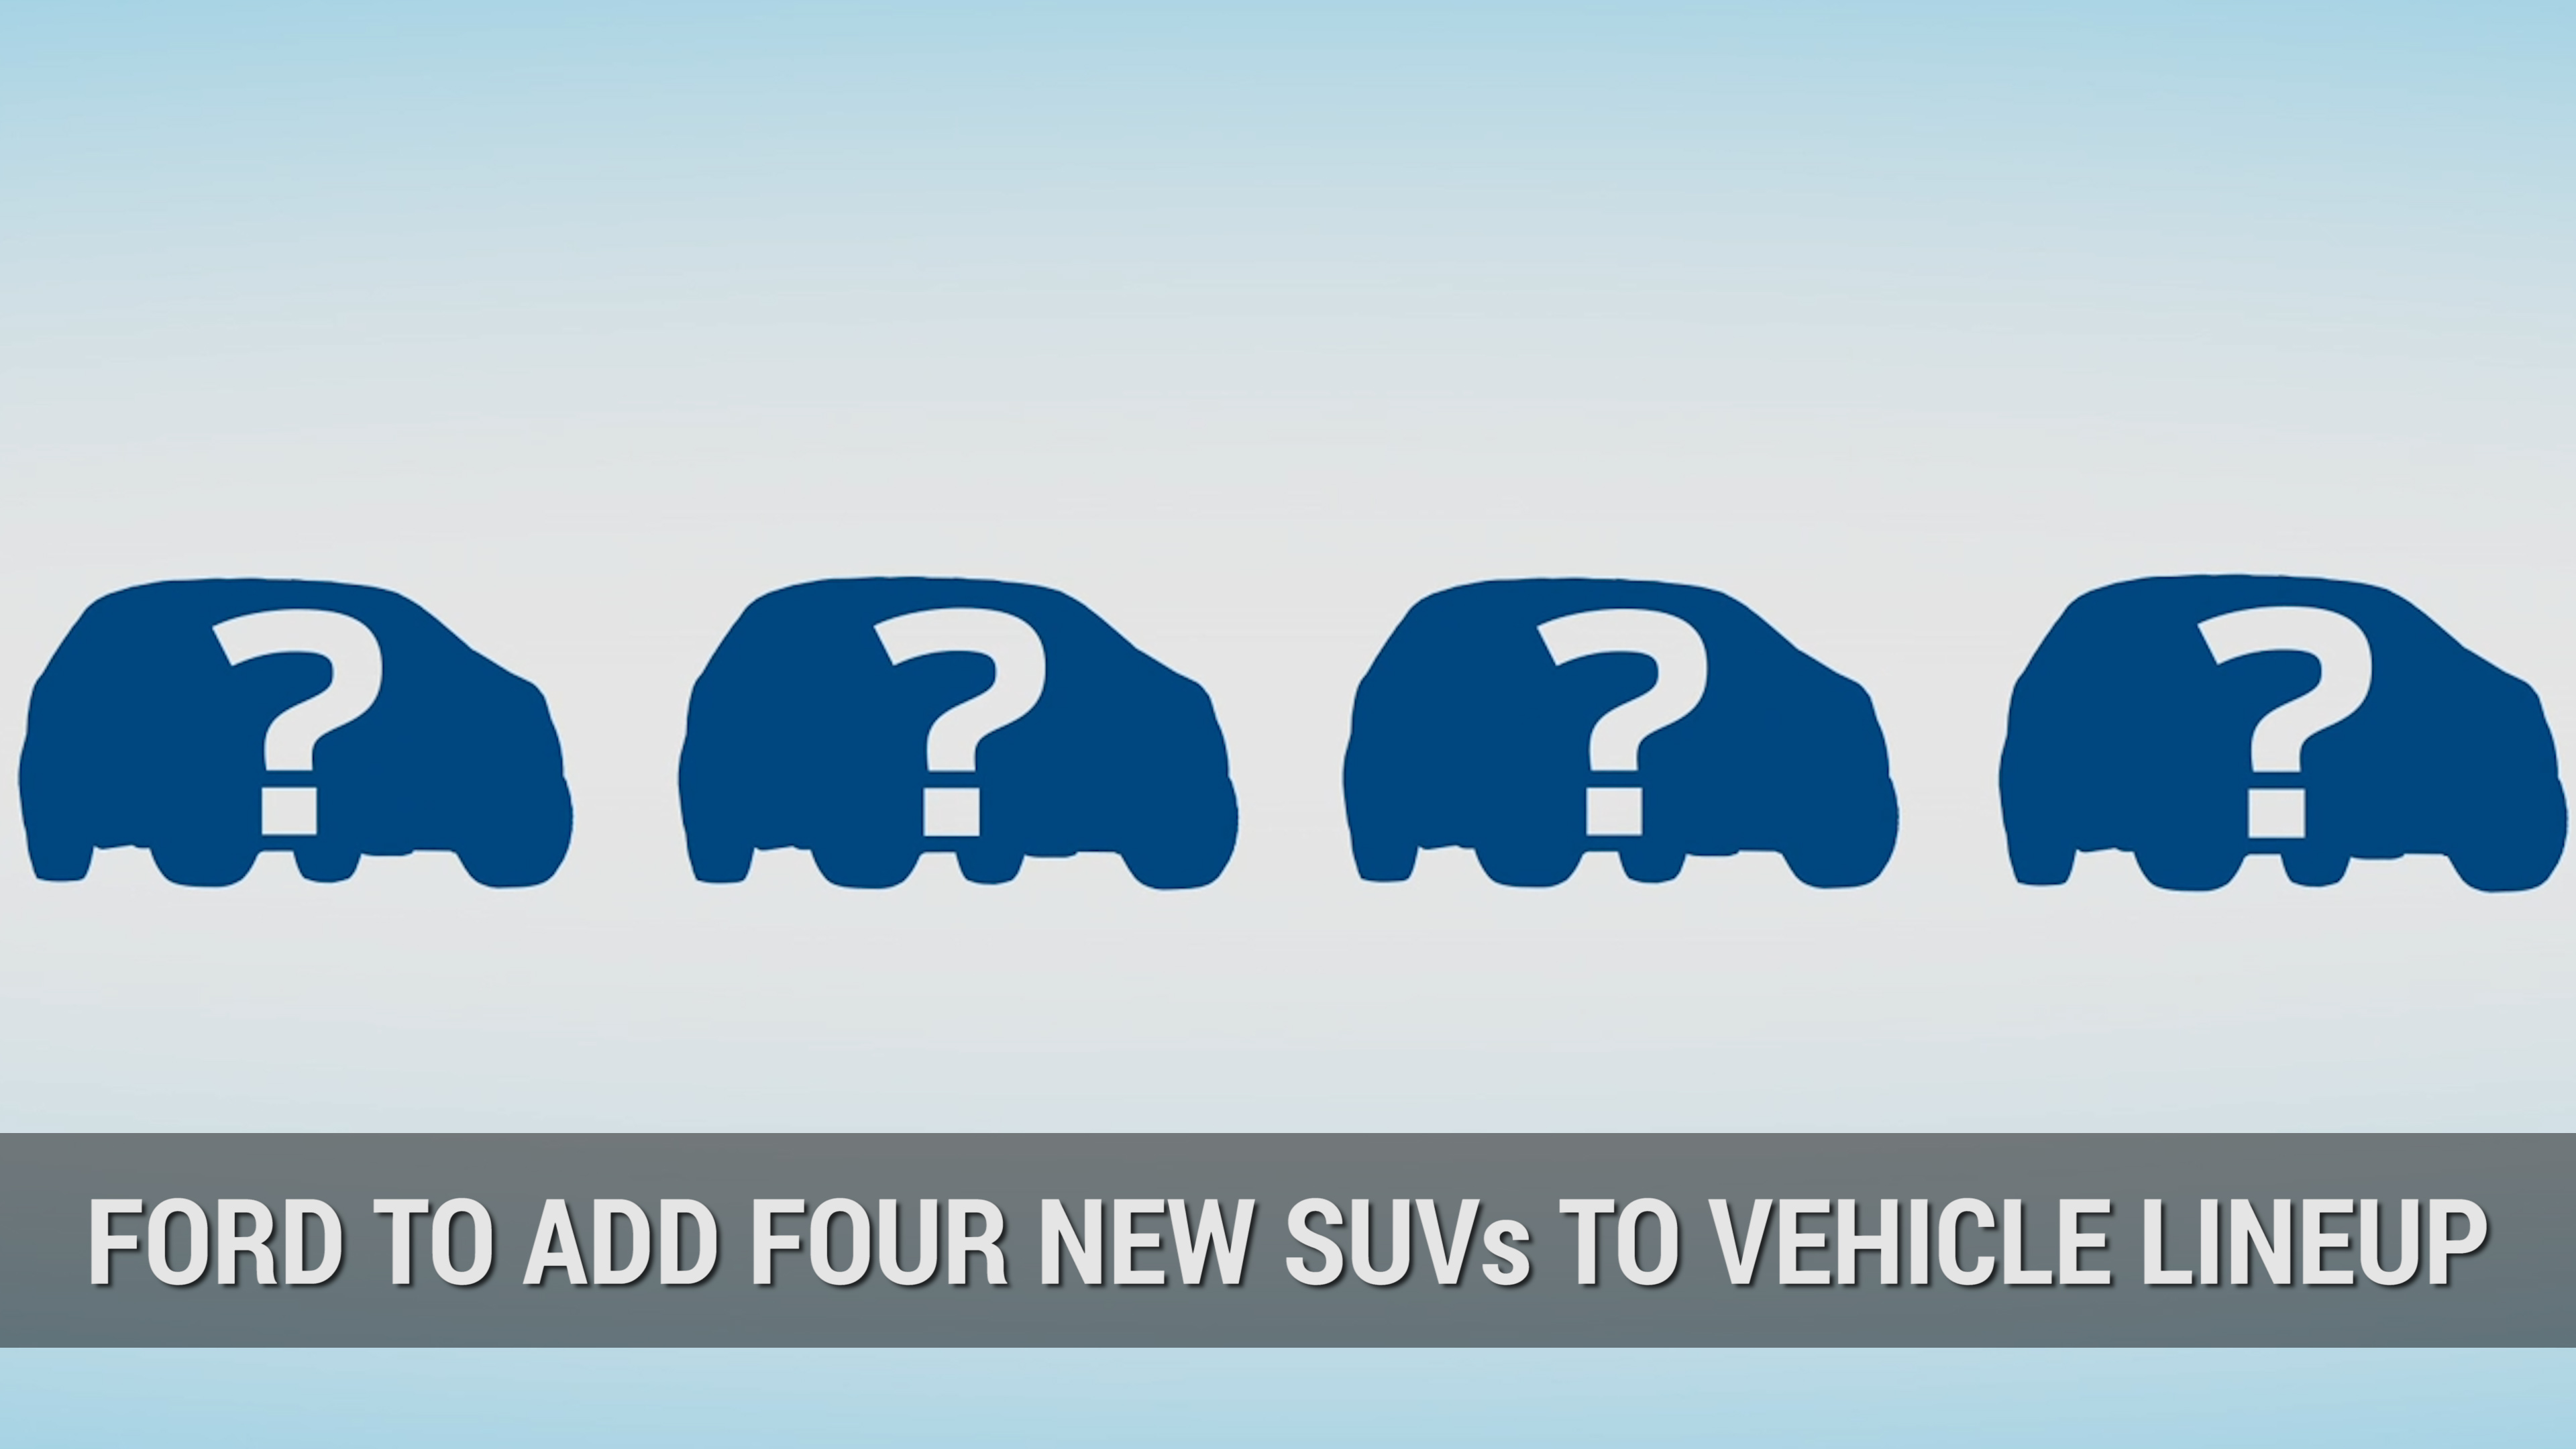 Ford Planning to Add Four SUVs To Lineup | Autoblog Minute